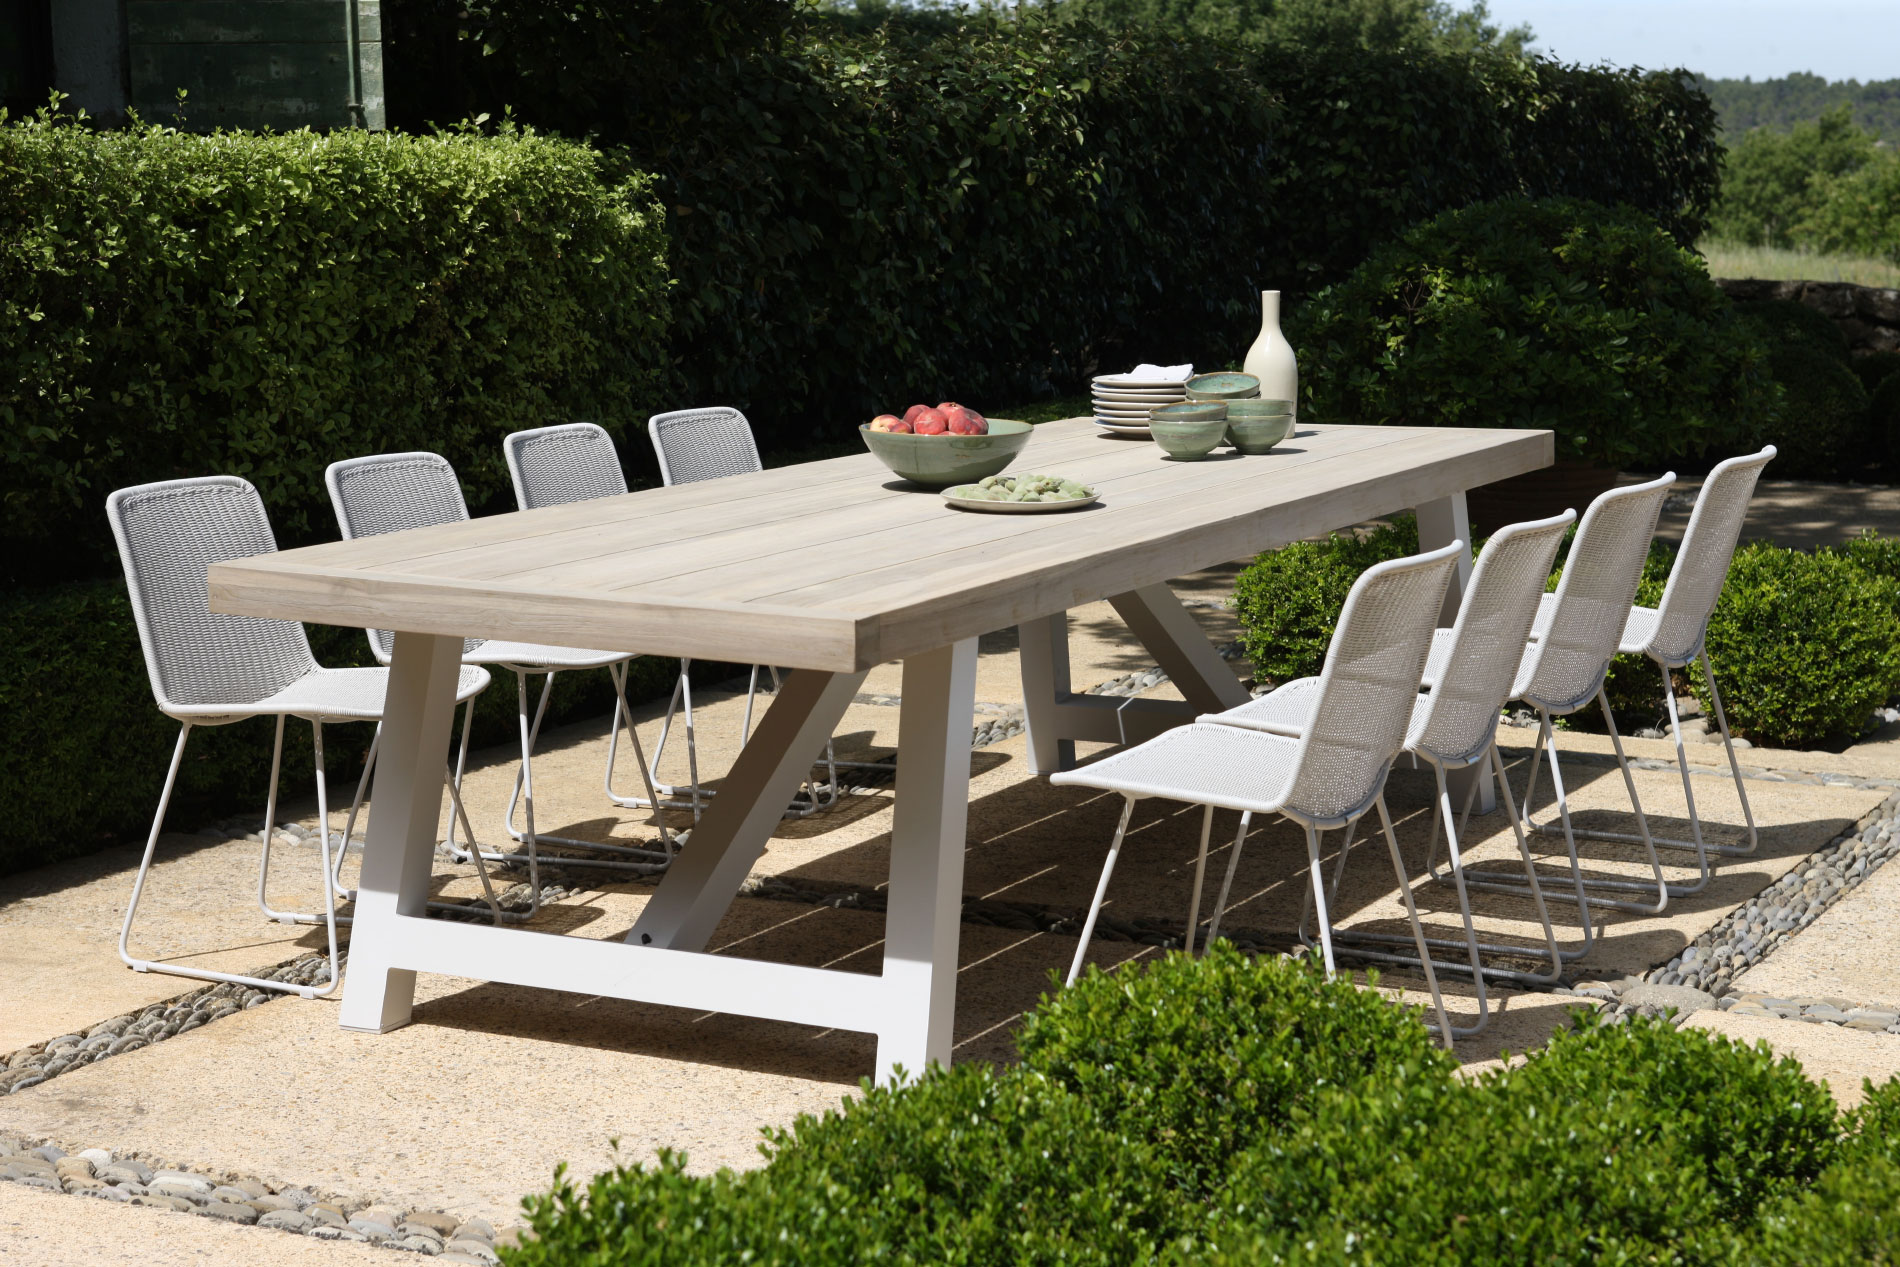 How to Create a Large Outdoor Dining Area